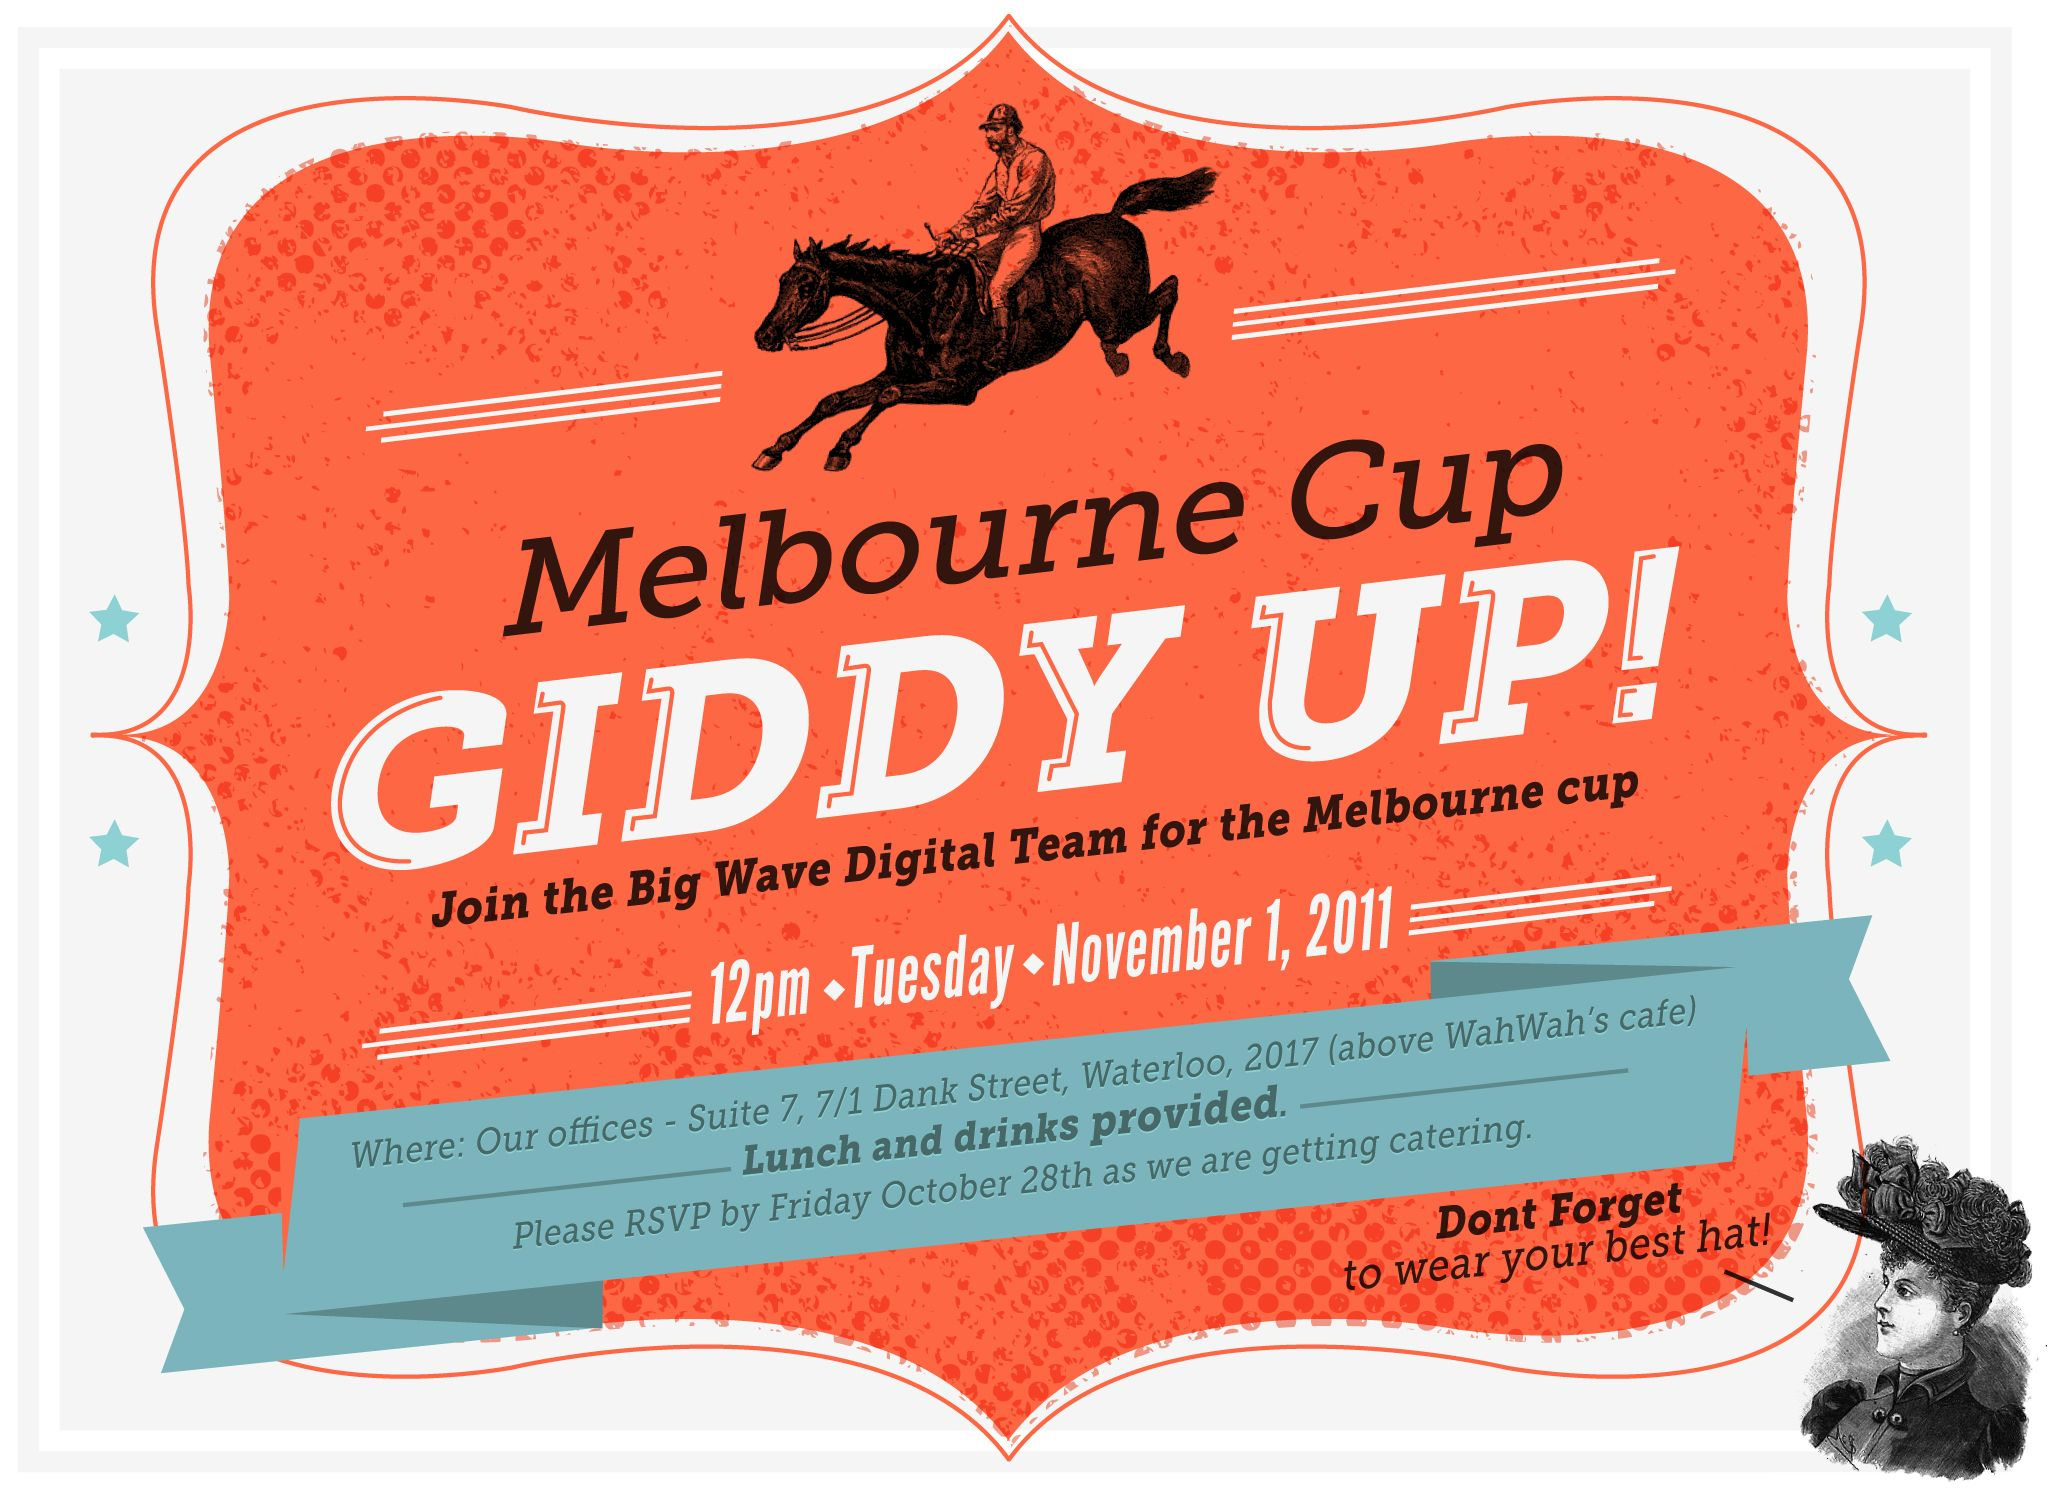 Melbourne cup Giddy Up! invite | My Work | Pinterest | Melbourne ...